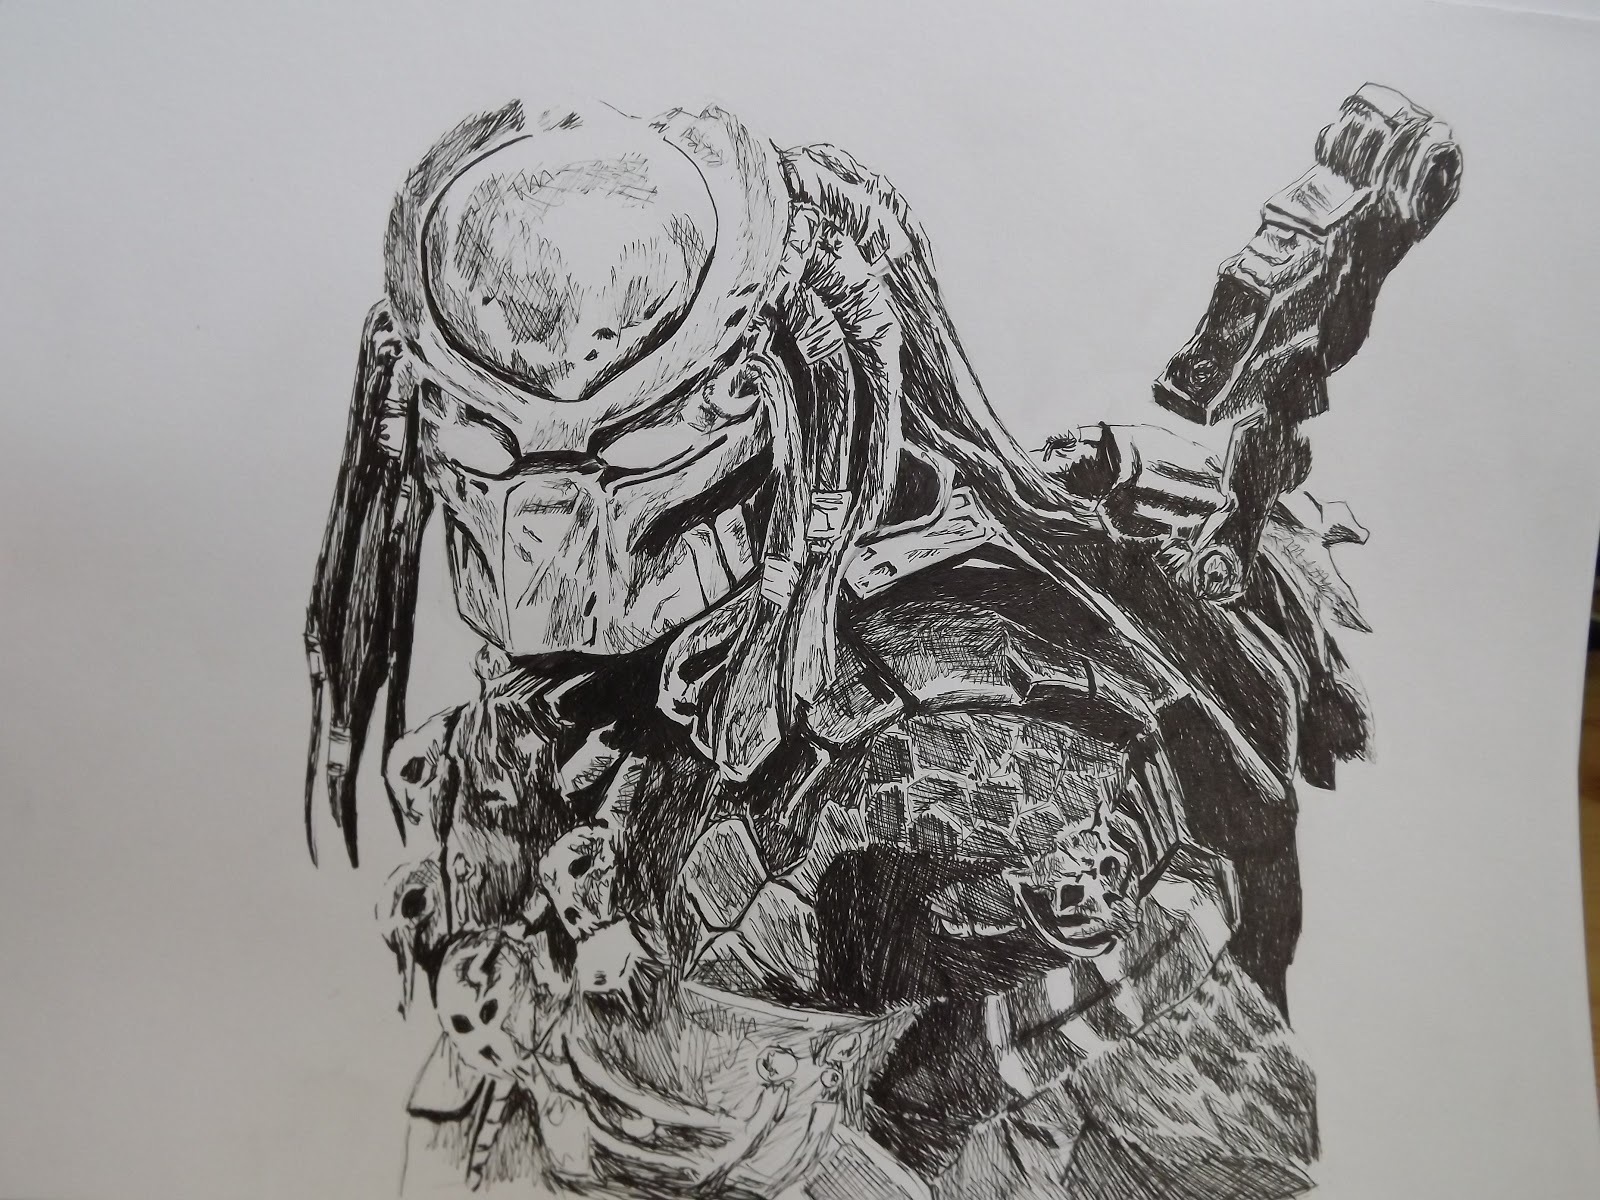 aliens vs predator drawings - photo #12